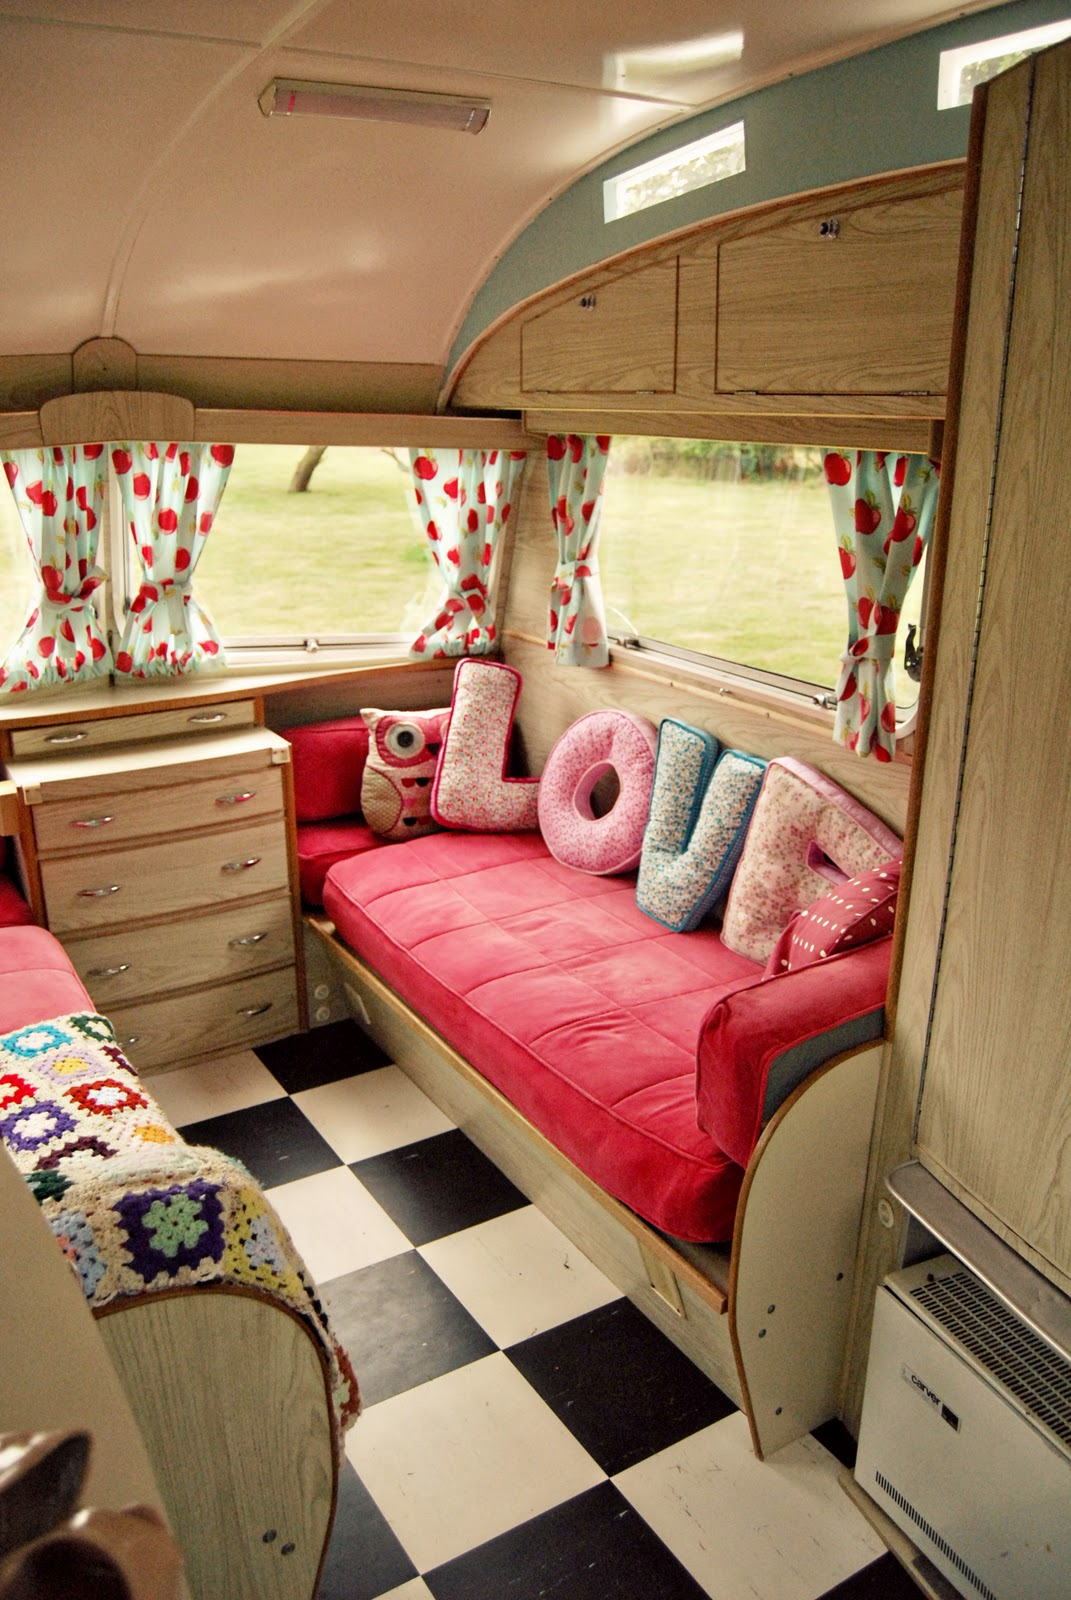 Planet kitty and dulcie every woman every man for Interior caravan designs